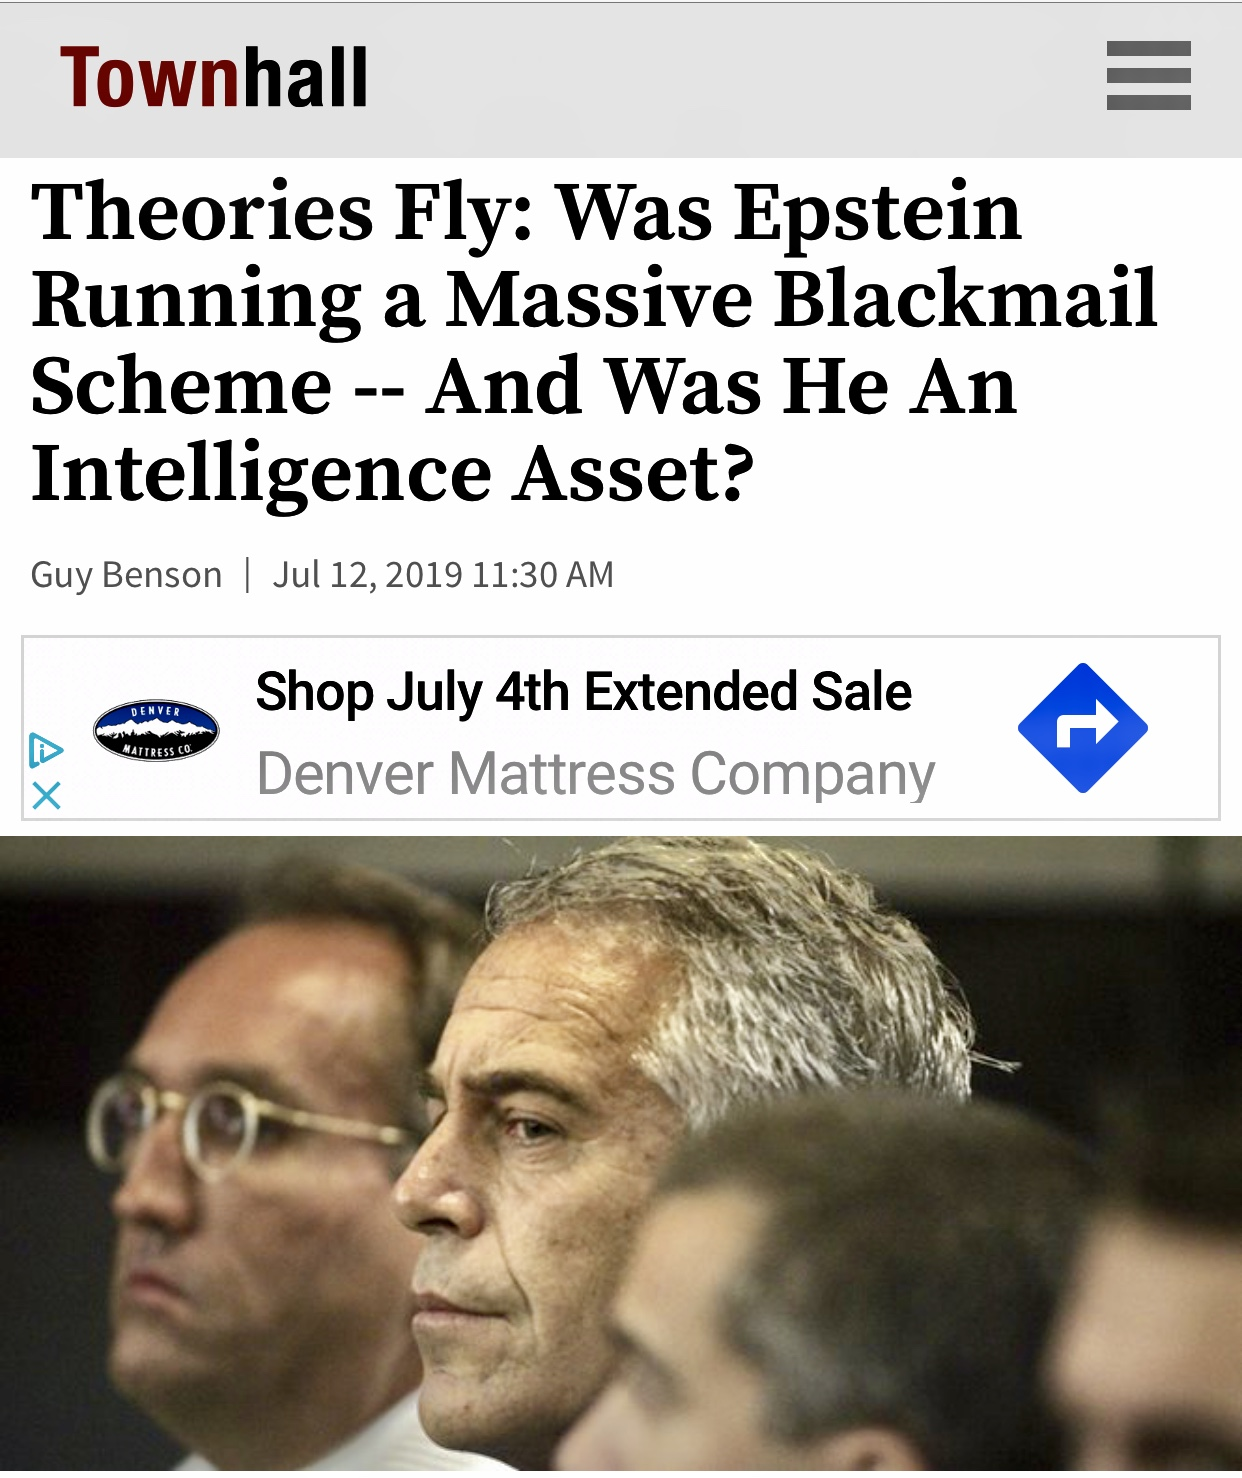 Theories Fly: Was Epstein Running a Massive Blackmail Scheme — And Was He An Intelligence Asset?